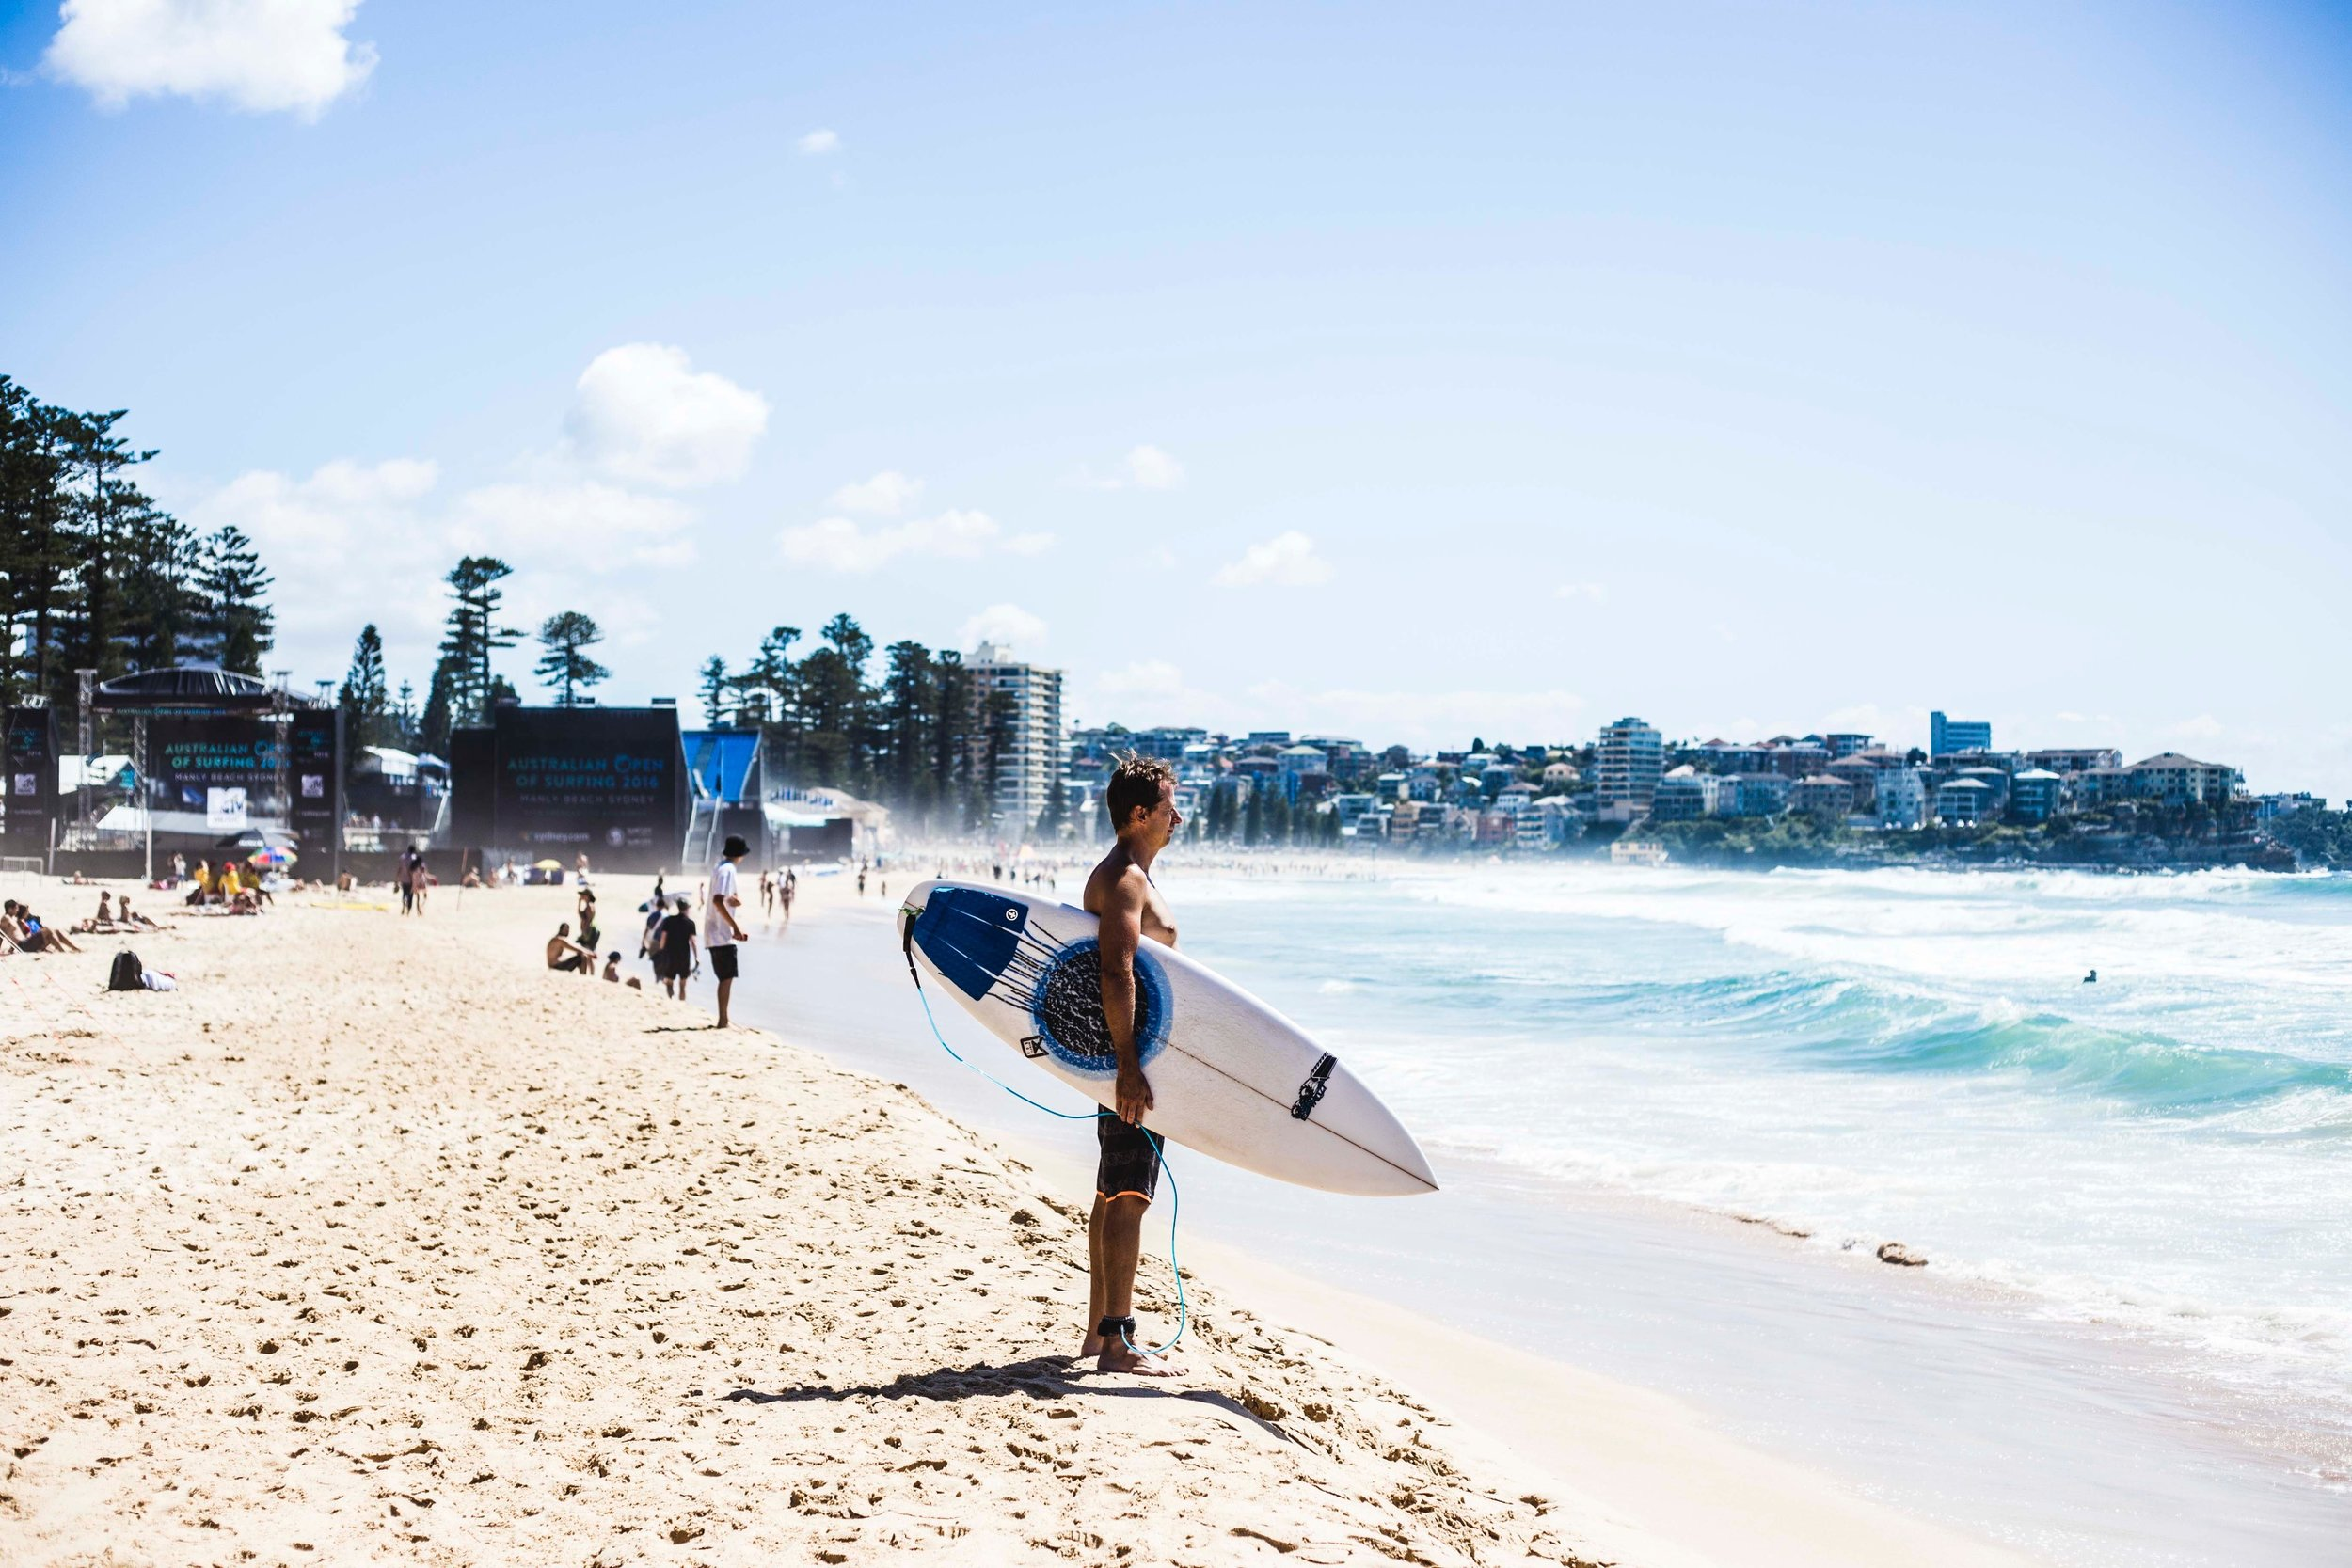 Surfer in Manly Beach. Photo: Marine Raynard